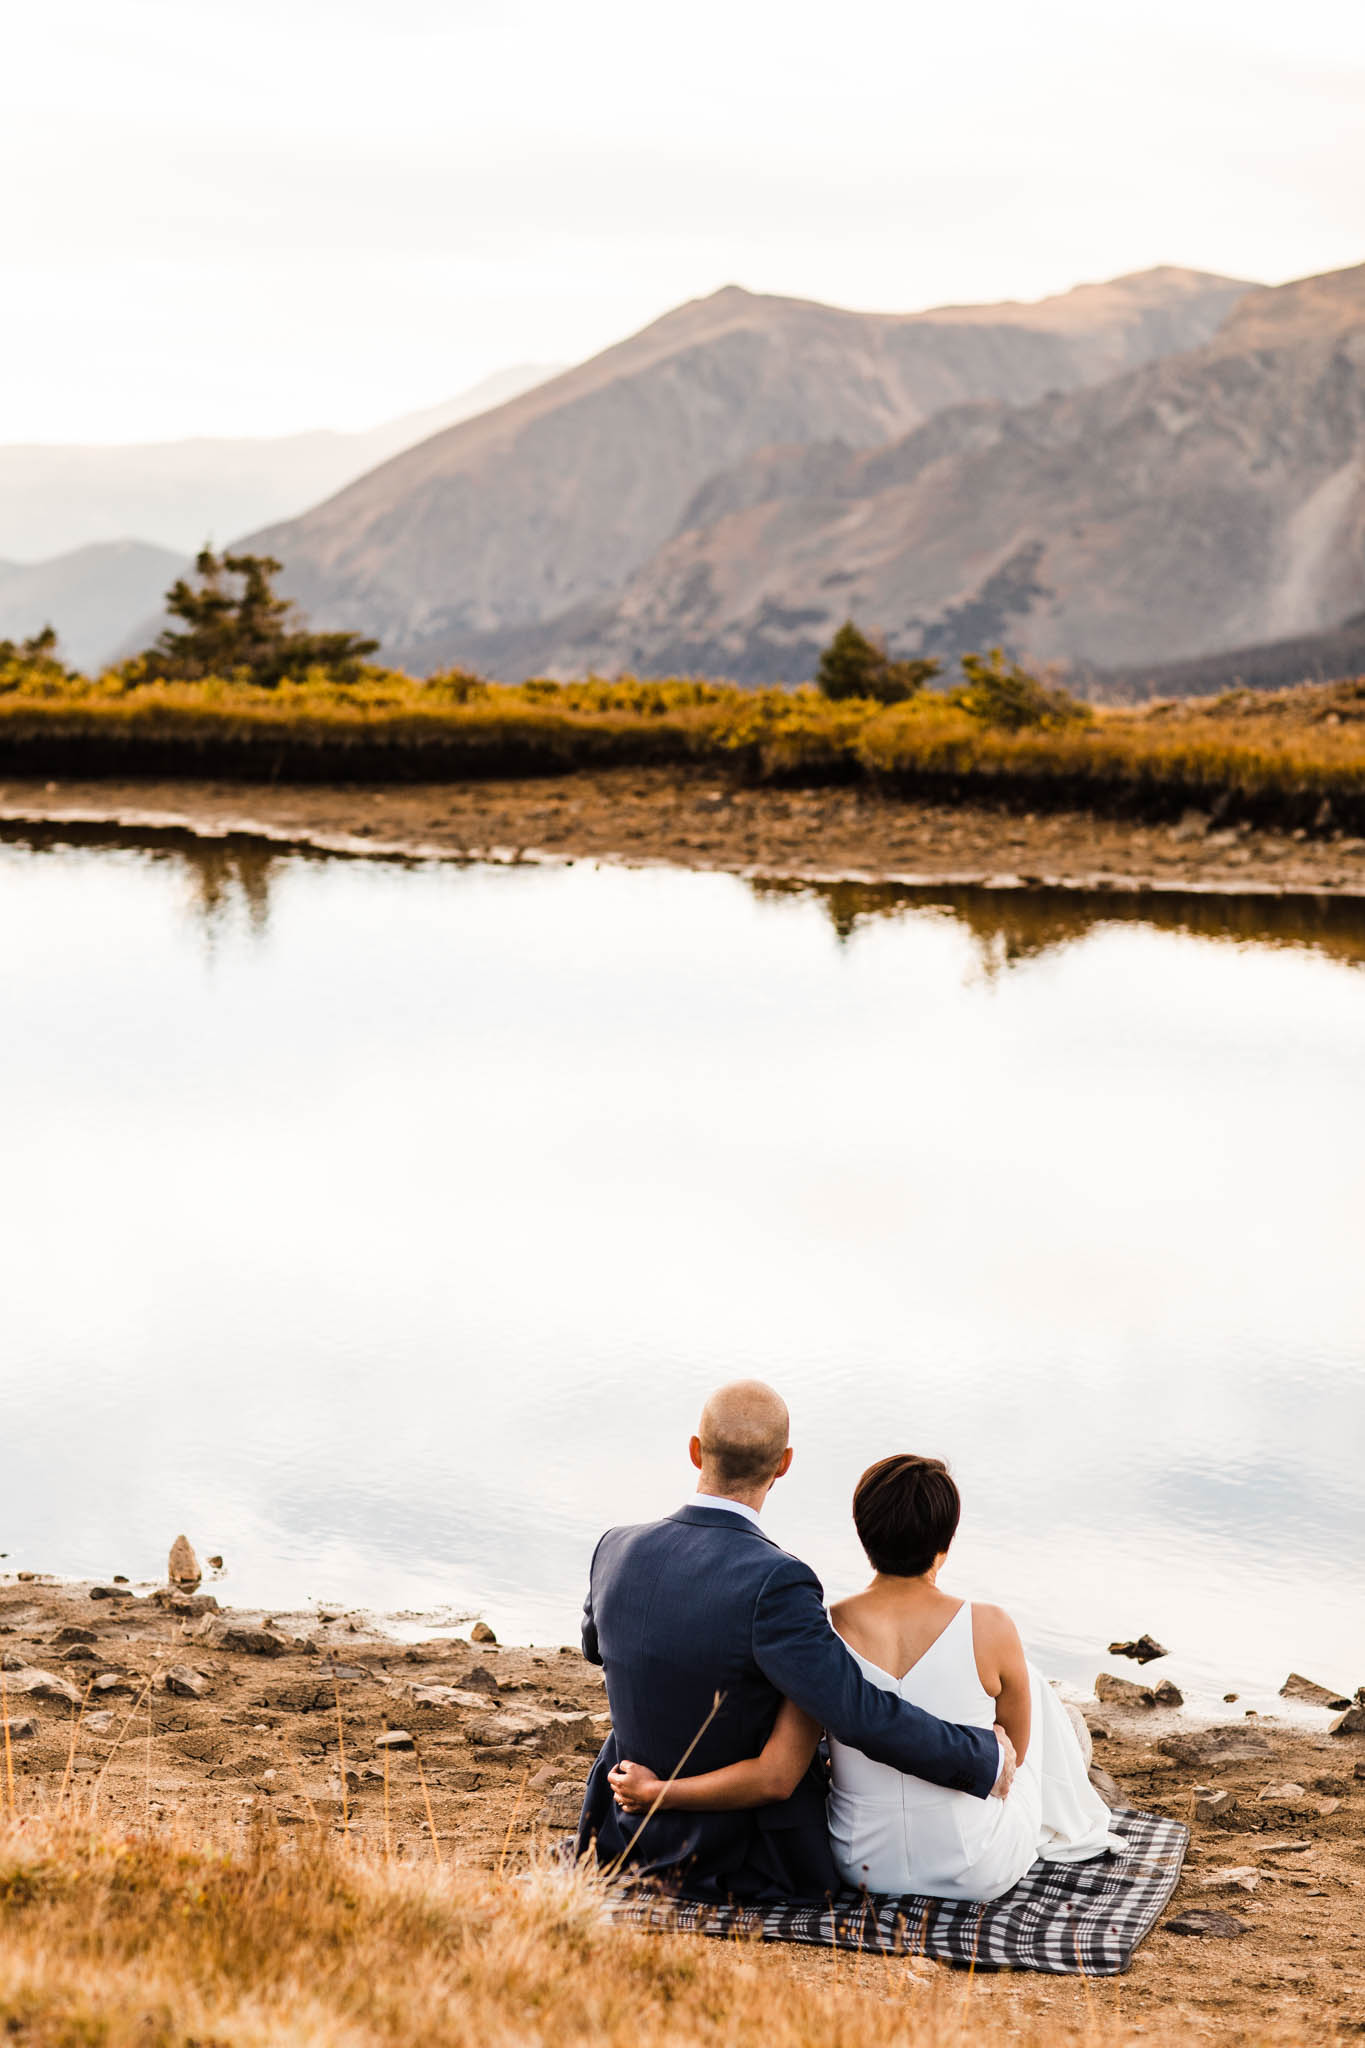 snuggling by a mountain lake | Rocky Mountain post-wedding session | Best Colorado elopement photographers